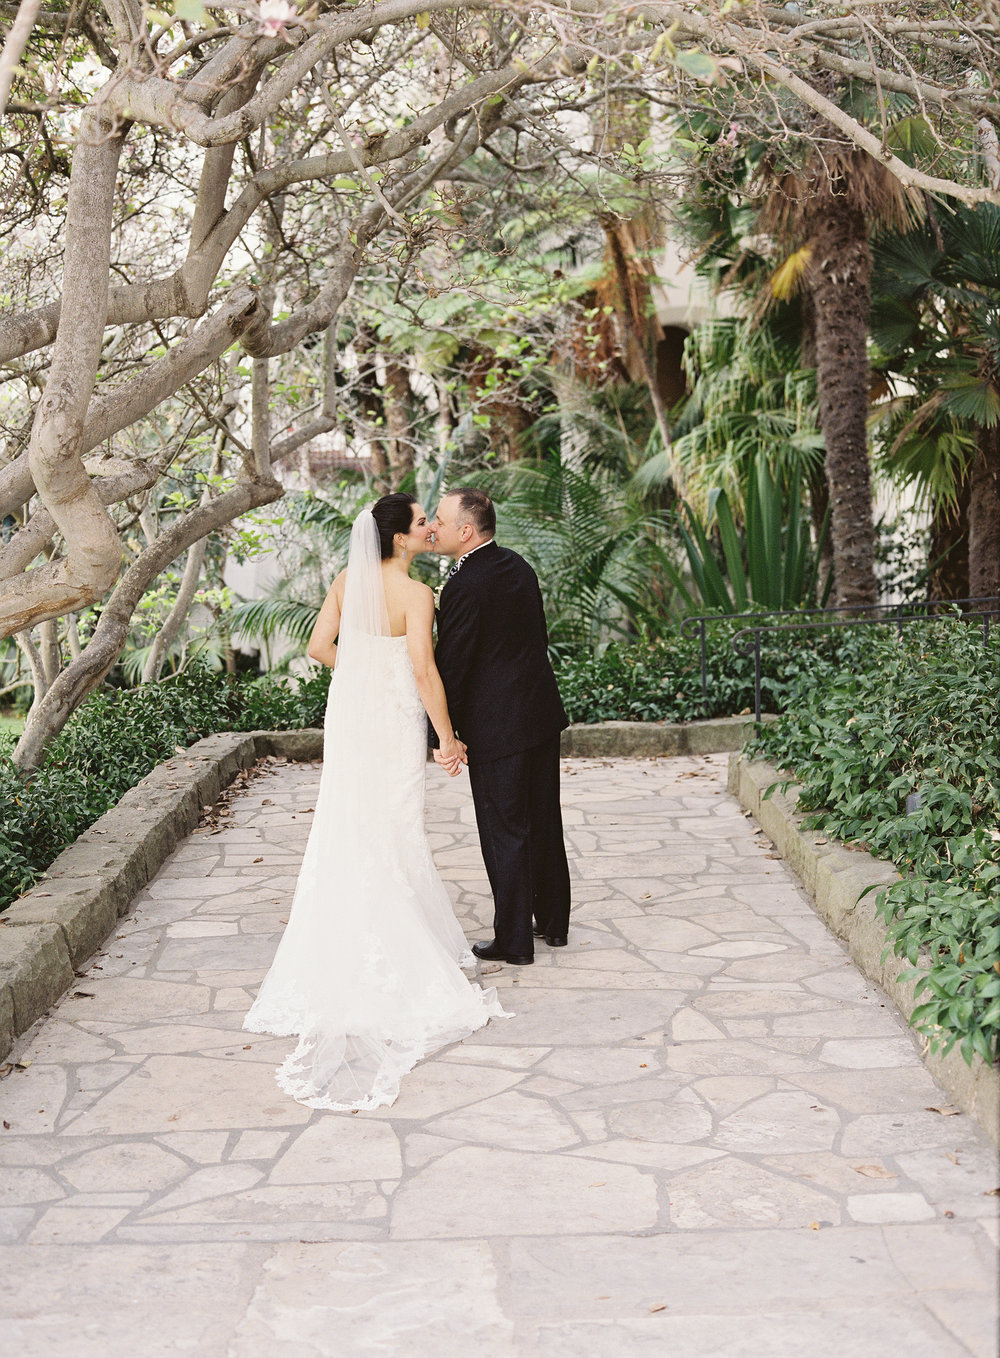 www.santabarbarawedding.com | Linda Chaja Photography | Santa Barbara Museum of Natural History Sea Center | Bride and Groom